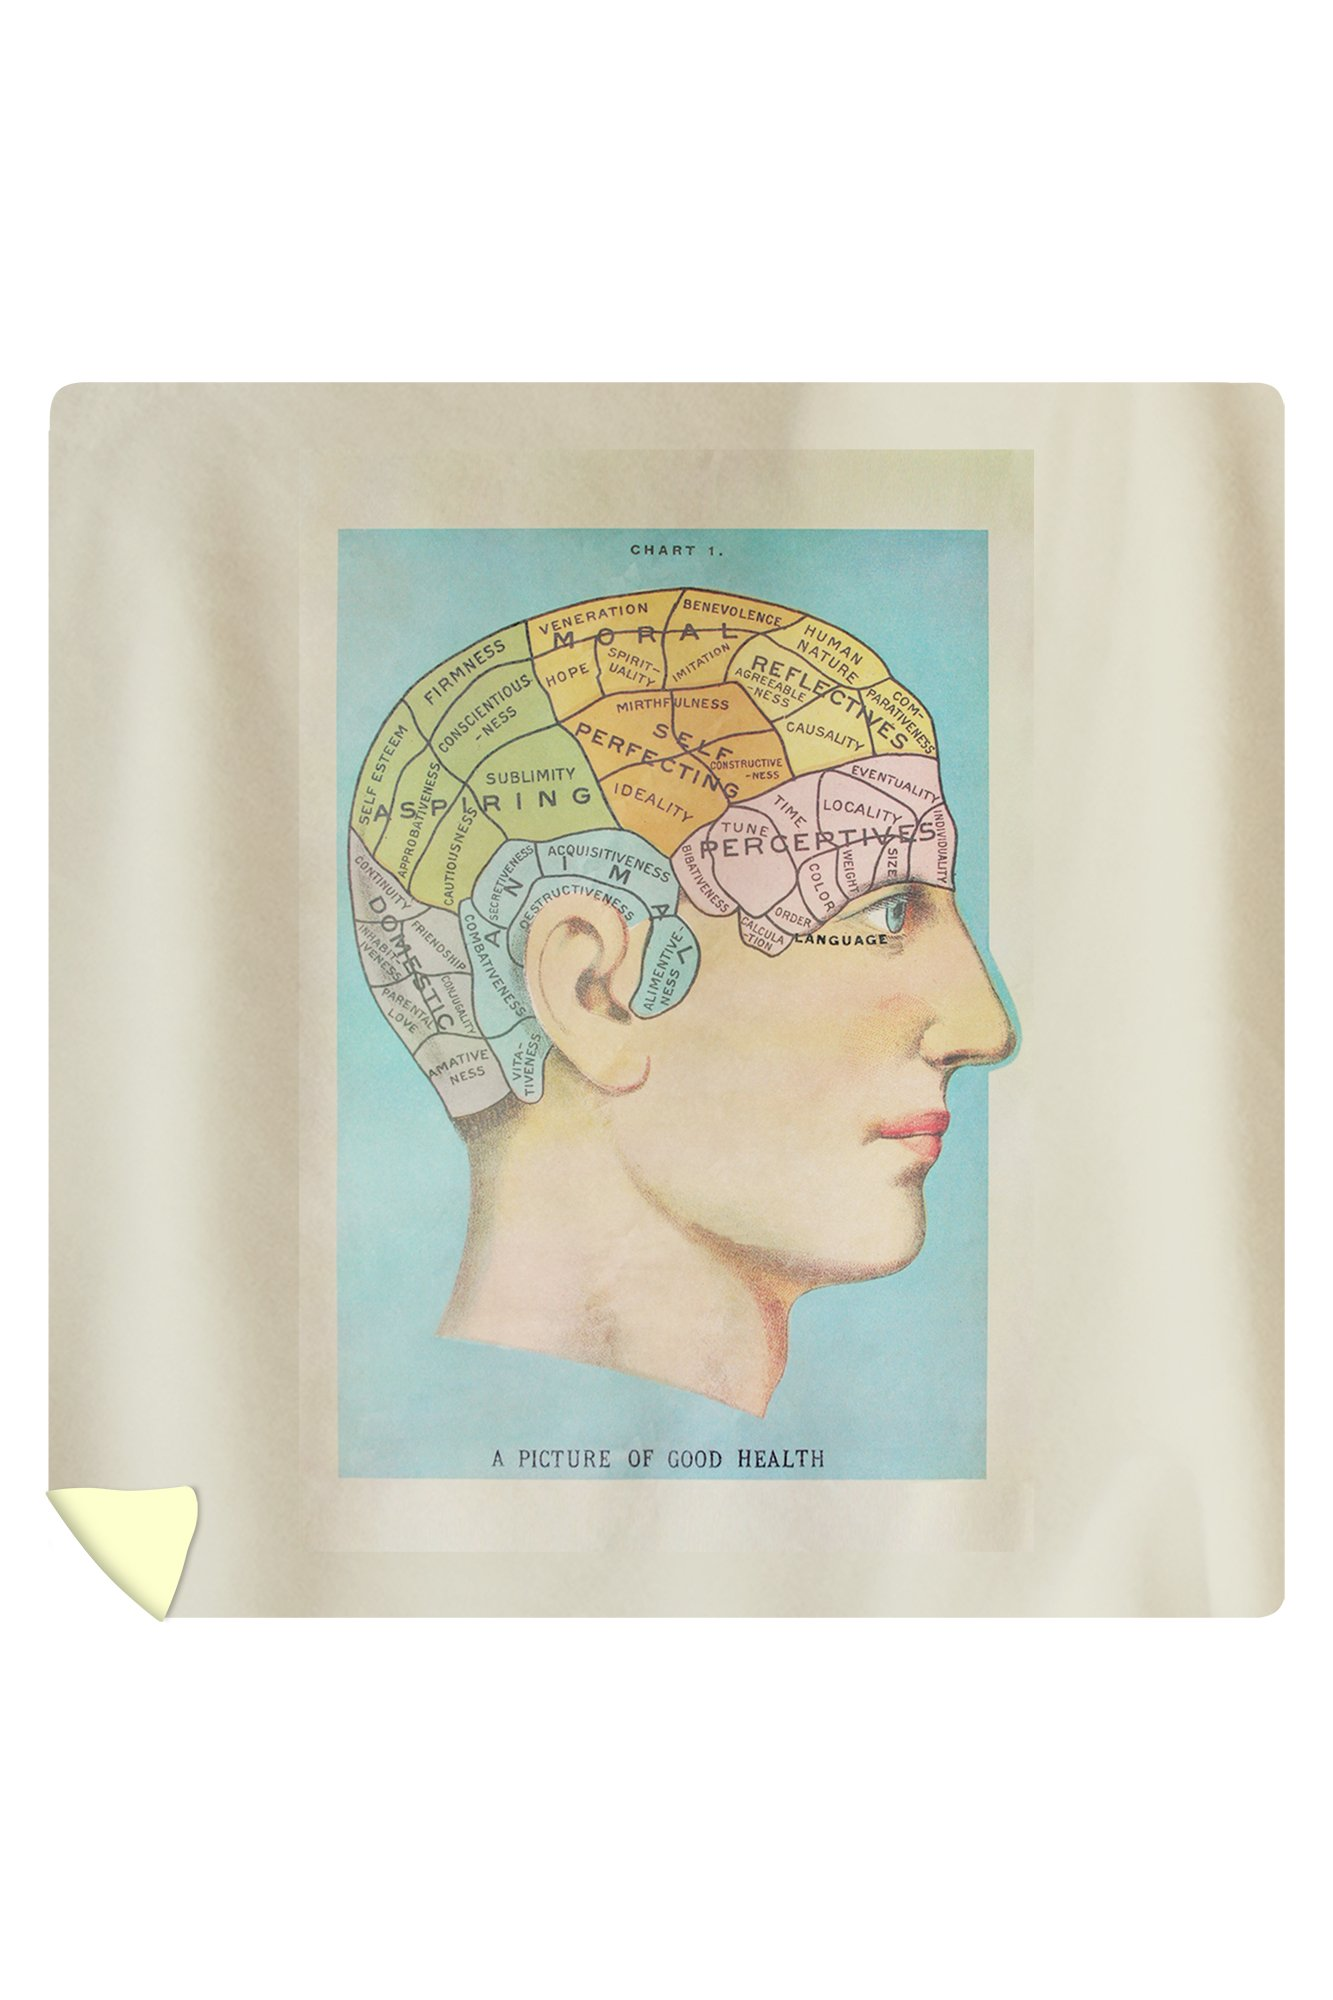 A Picture of Good Health - Vintage Cognitive Science Lithograph (88x88 Queen Microfiber Duvet Cover)